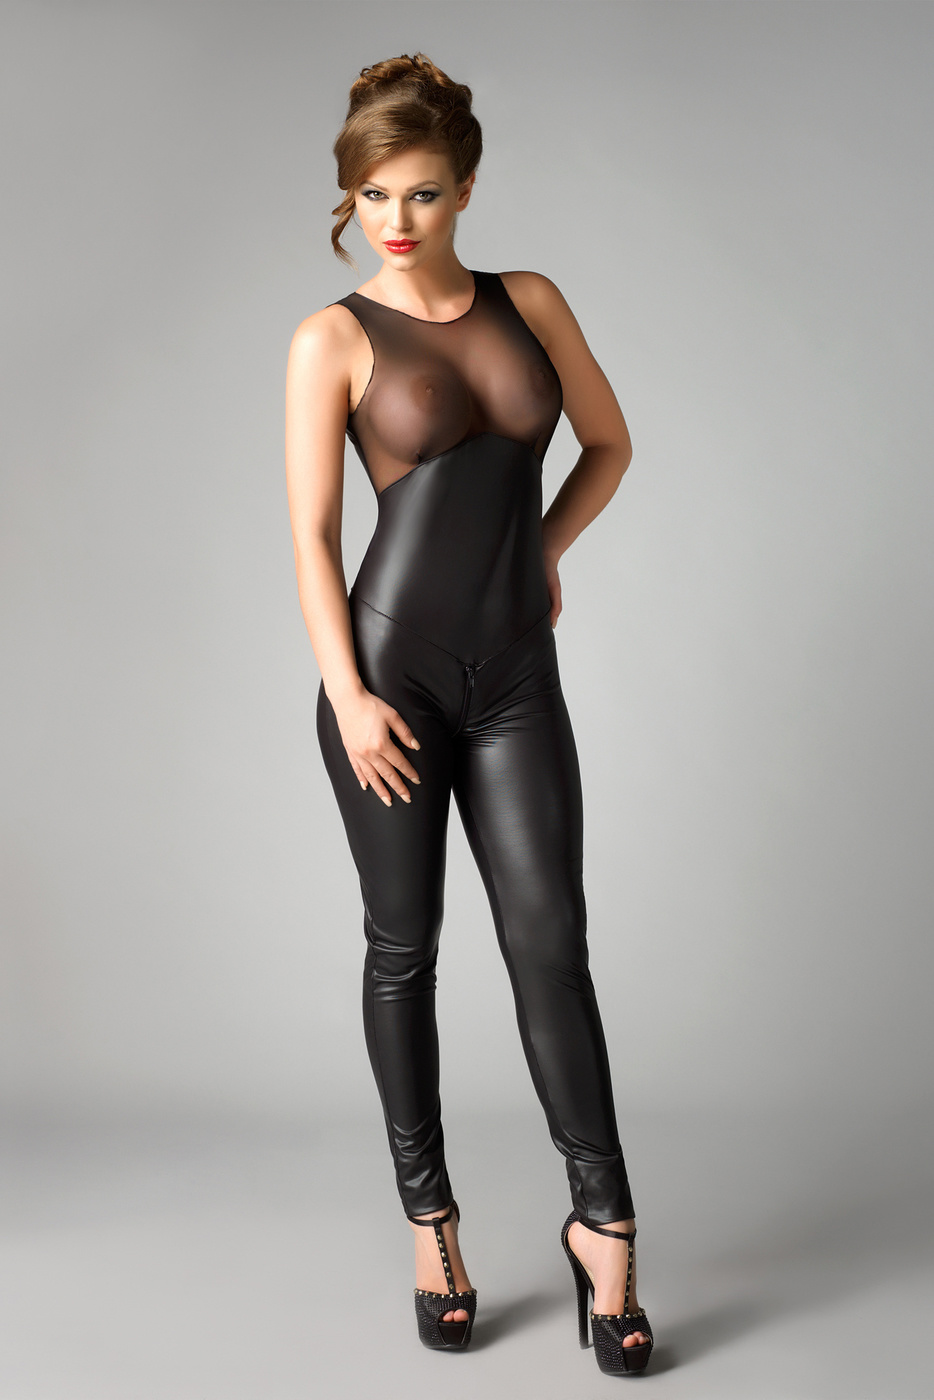 girl-women-in-tight-fitting-clothes-nude-delivery-girl